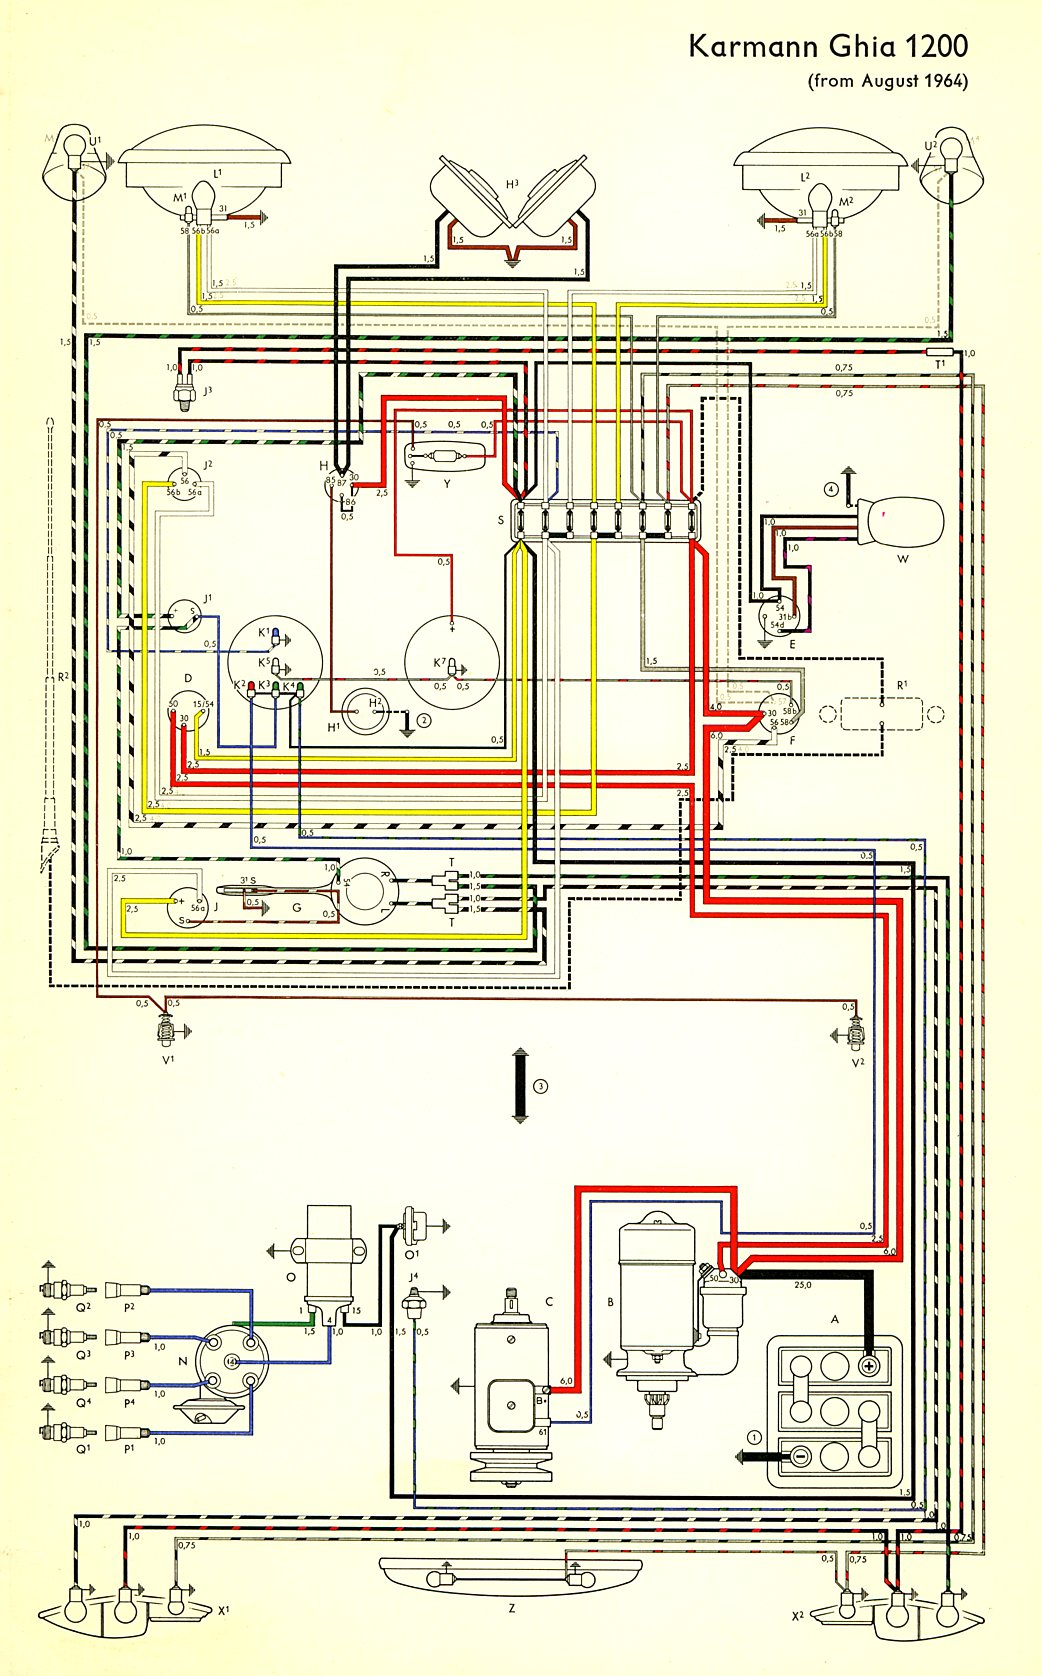 1968 Vw Beetle Autostick Wiring Diagram - Wiring Diagram